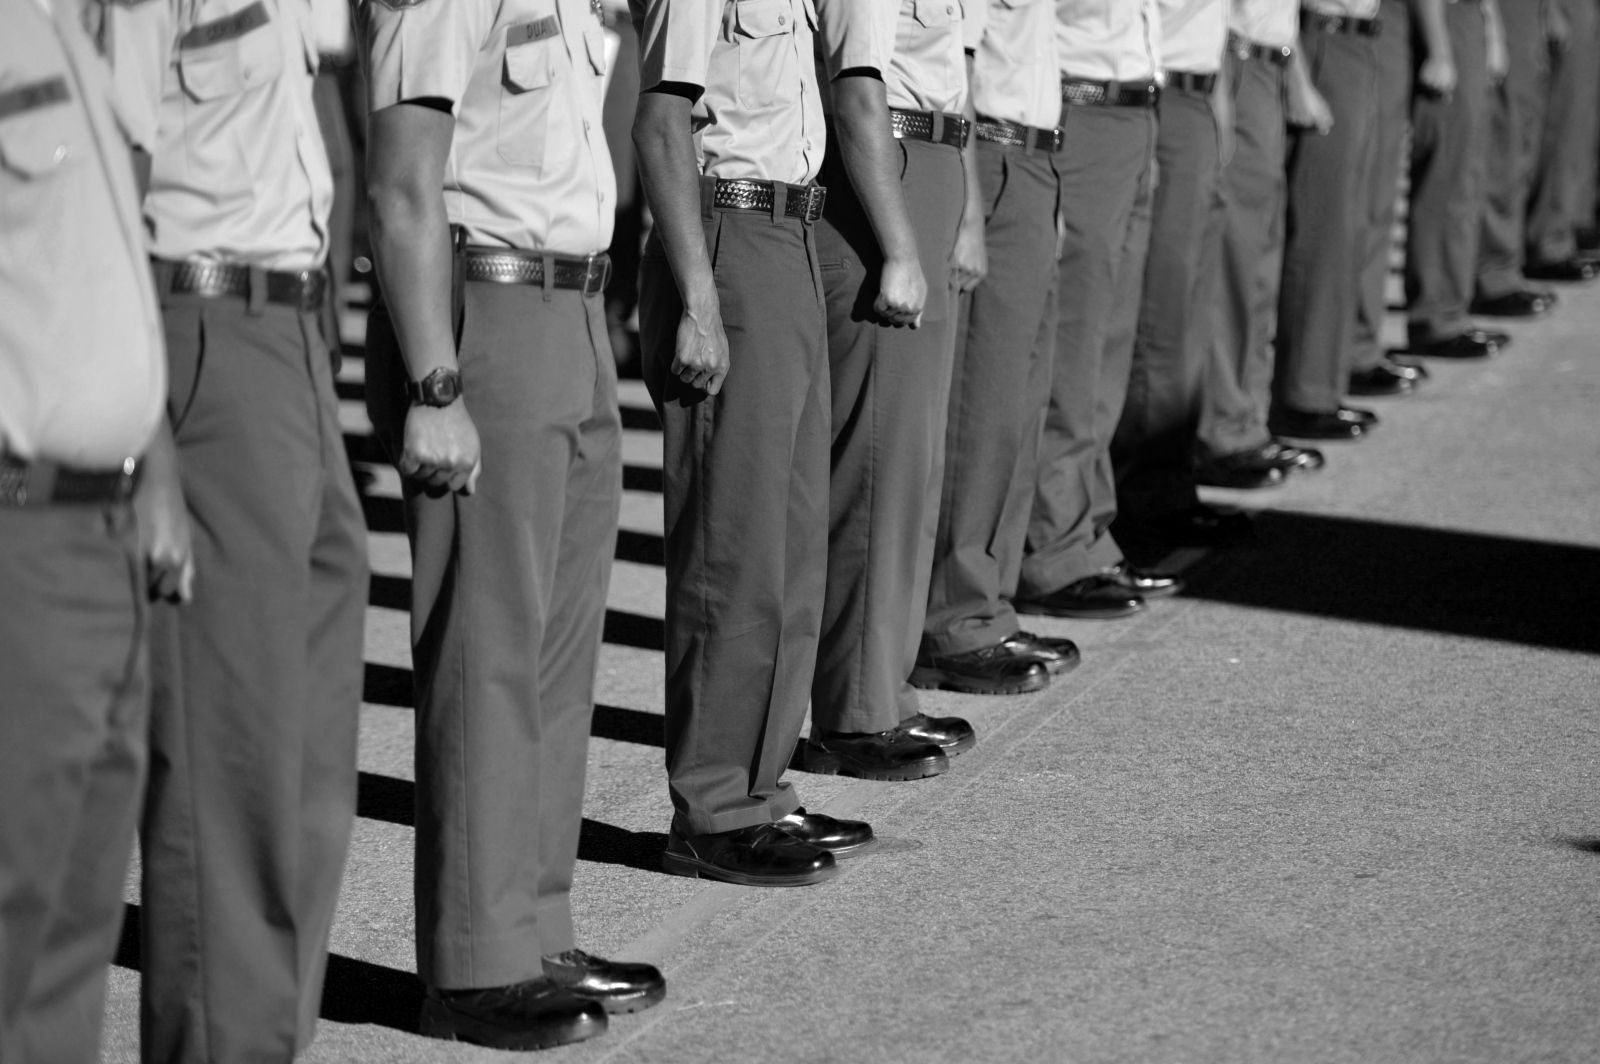 Recruits stand at attention just before the graduation ceremony begins at Whittier High School on Jan. 17, 2015.